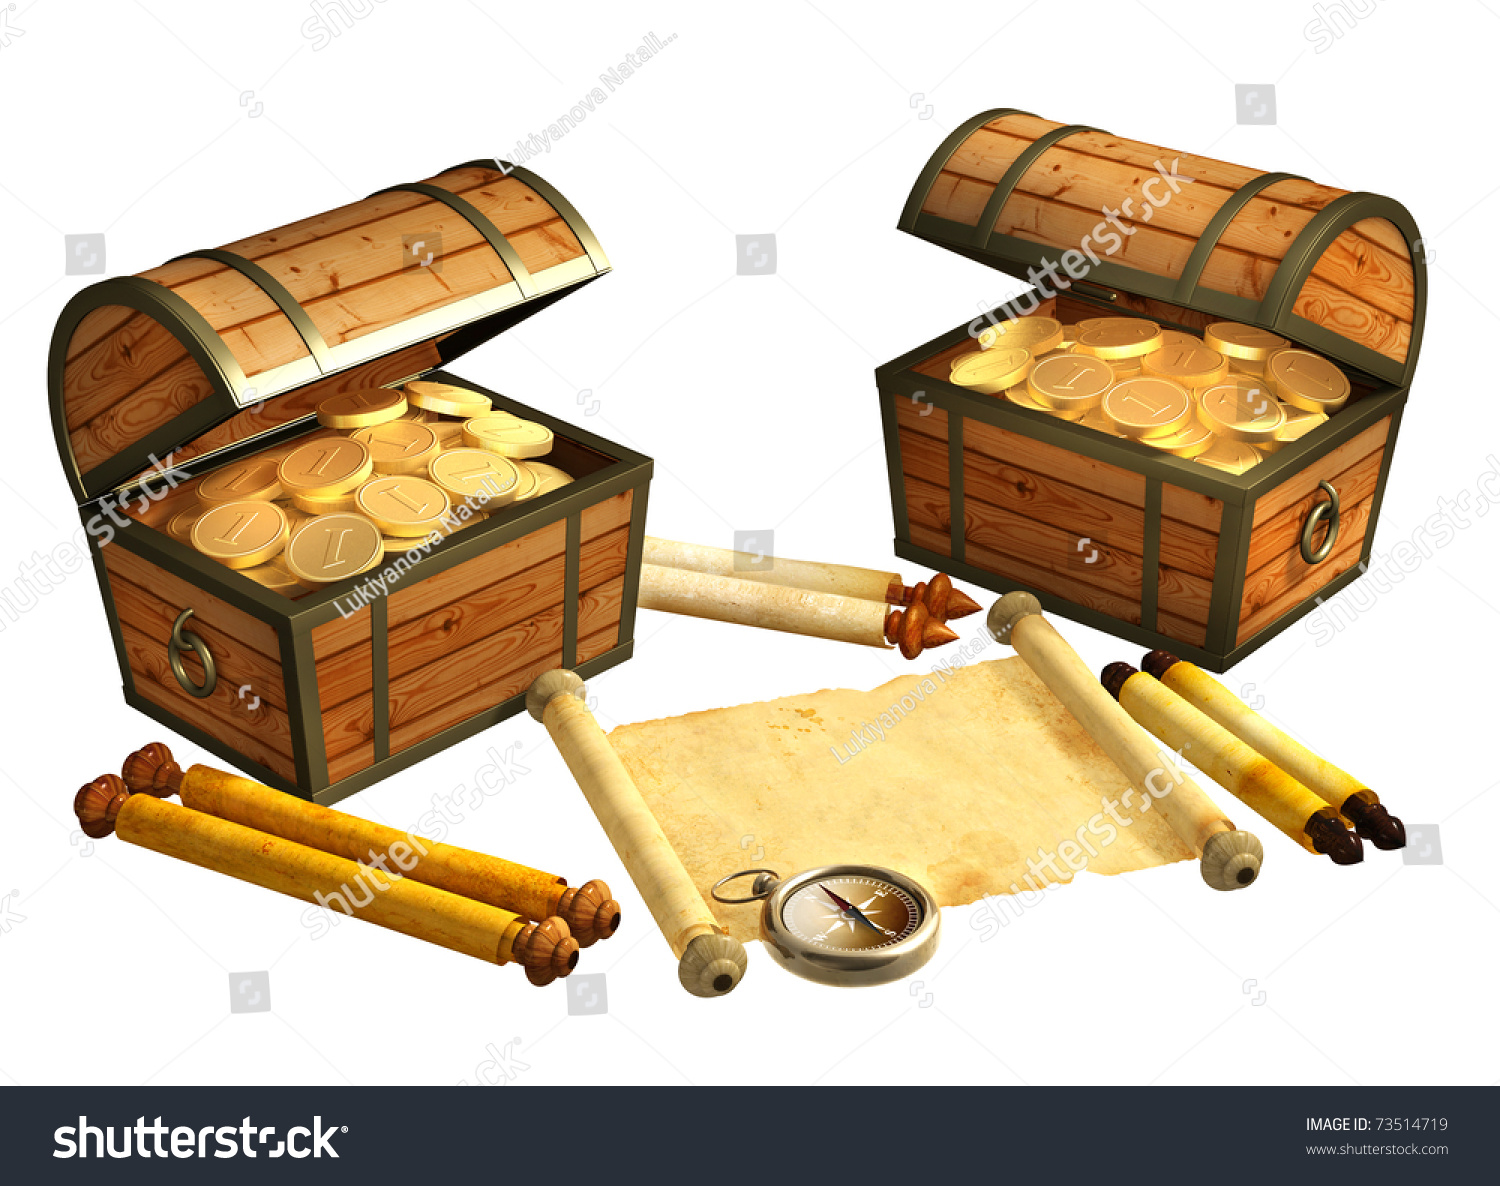 pirate treasure objects isolated over white stock illustration